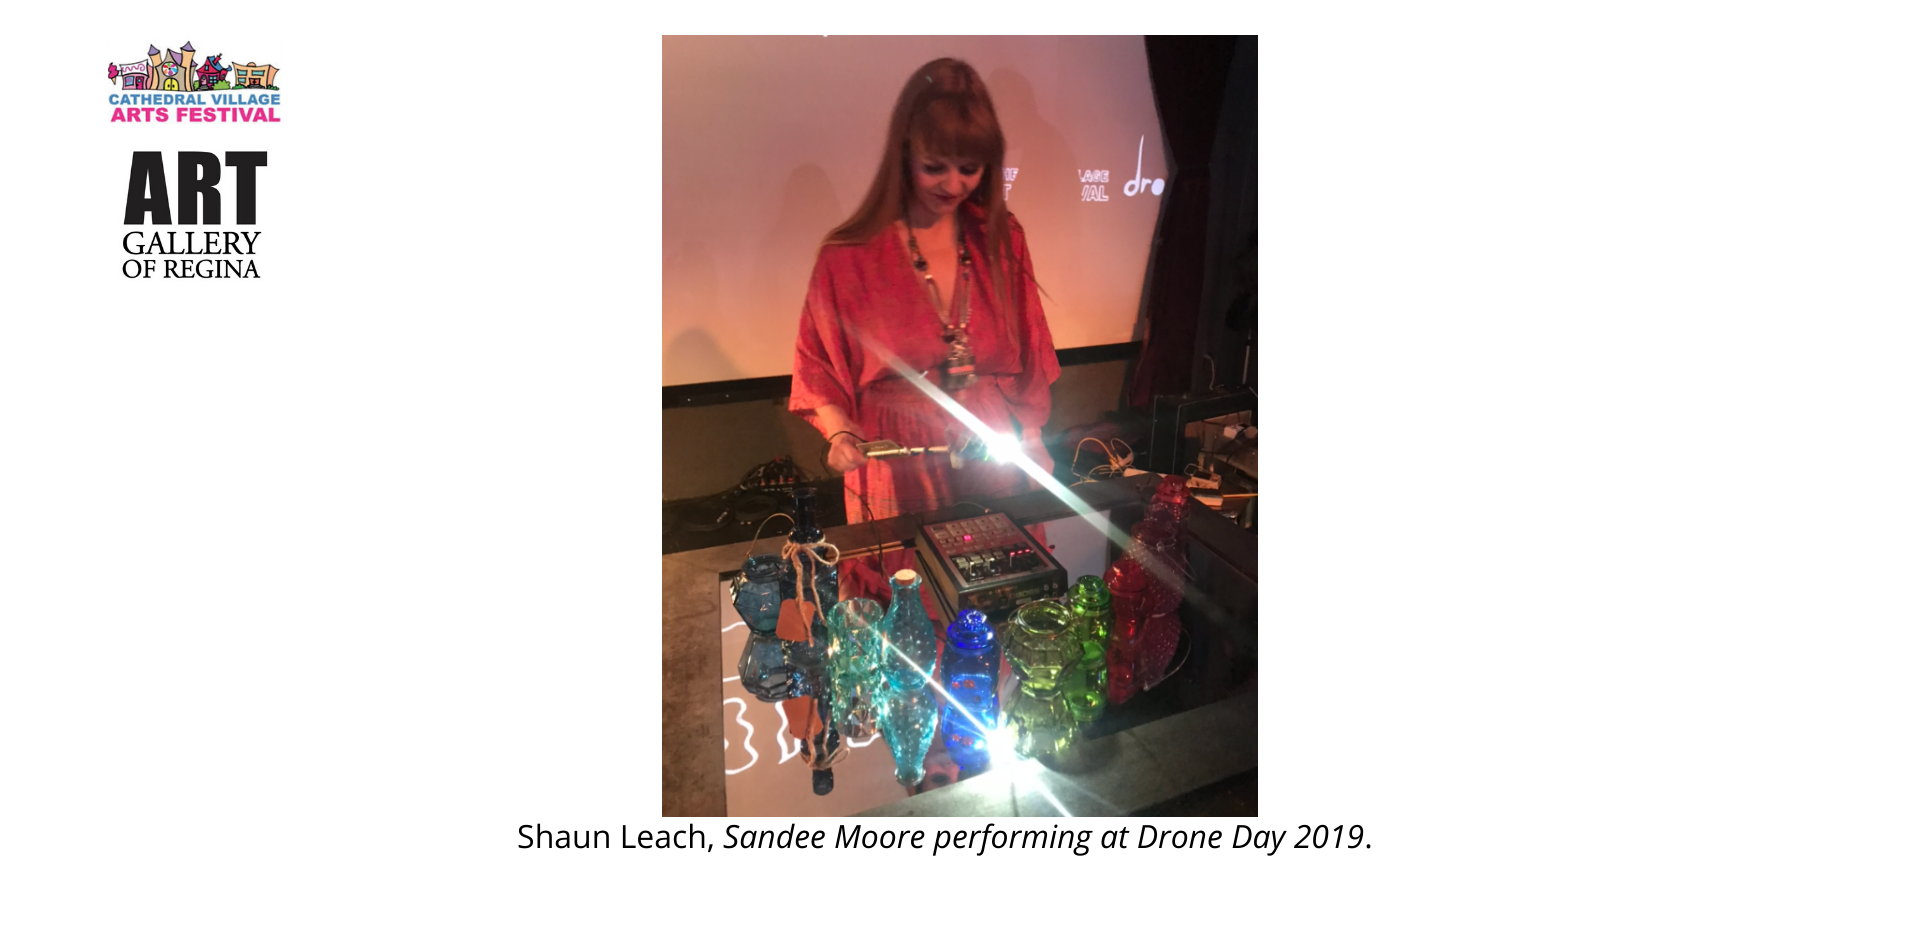 Shaun Leach, Sandee Moore performing at Drone Day 2019.